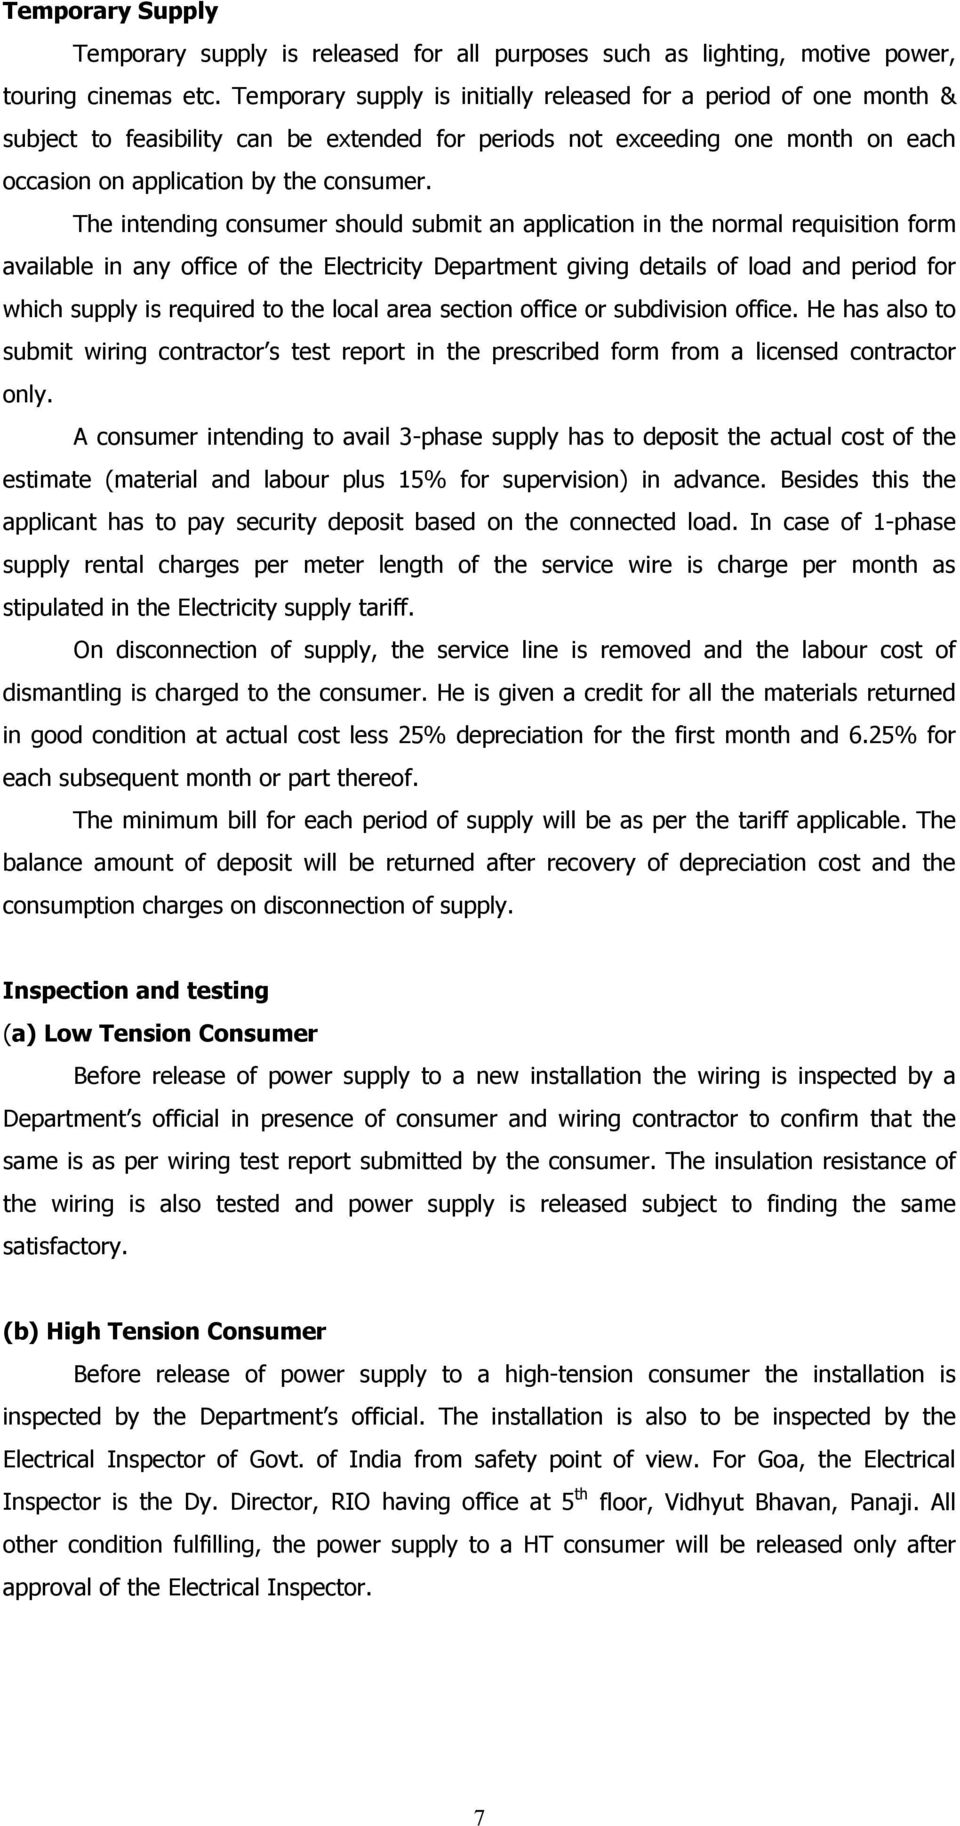 The intending consumer should submit an application in the normal requisition form available in any office of the Electricity Department giving details of load and period for which supply is required